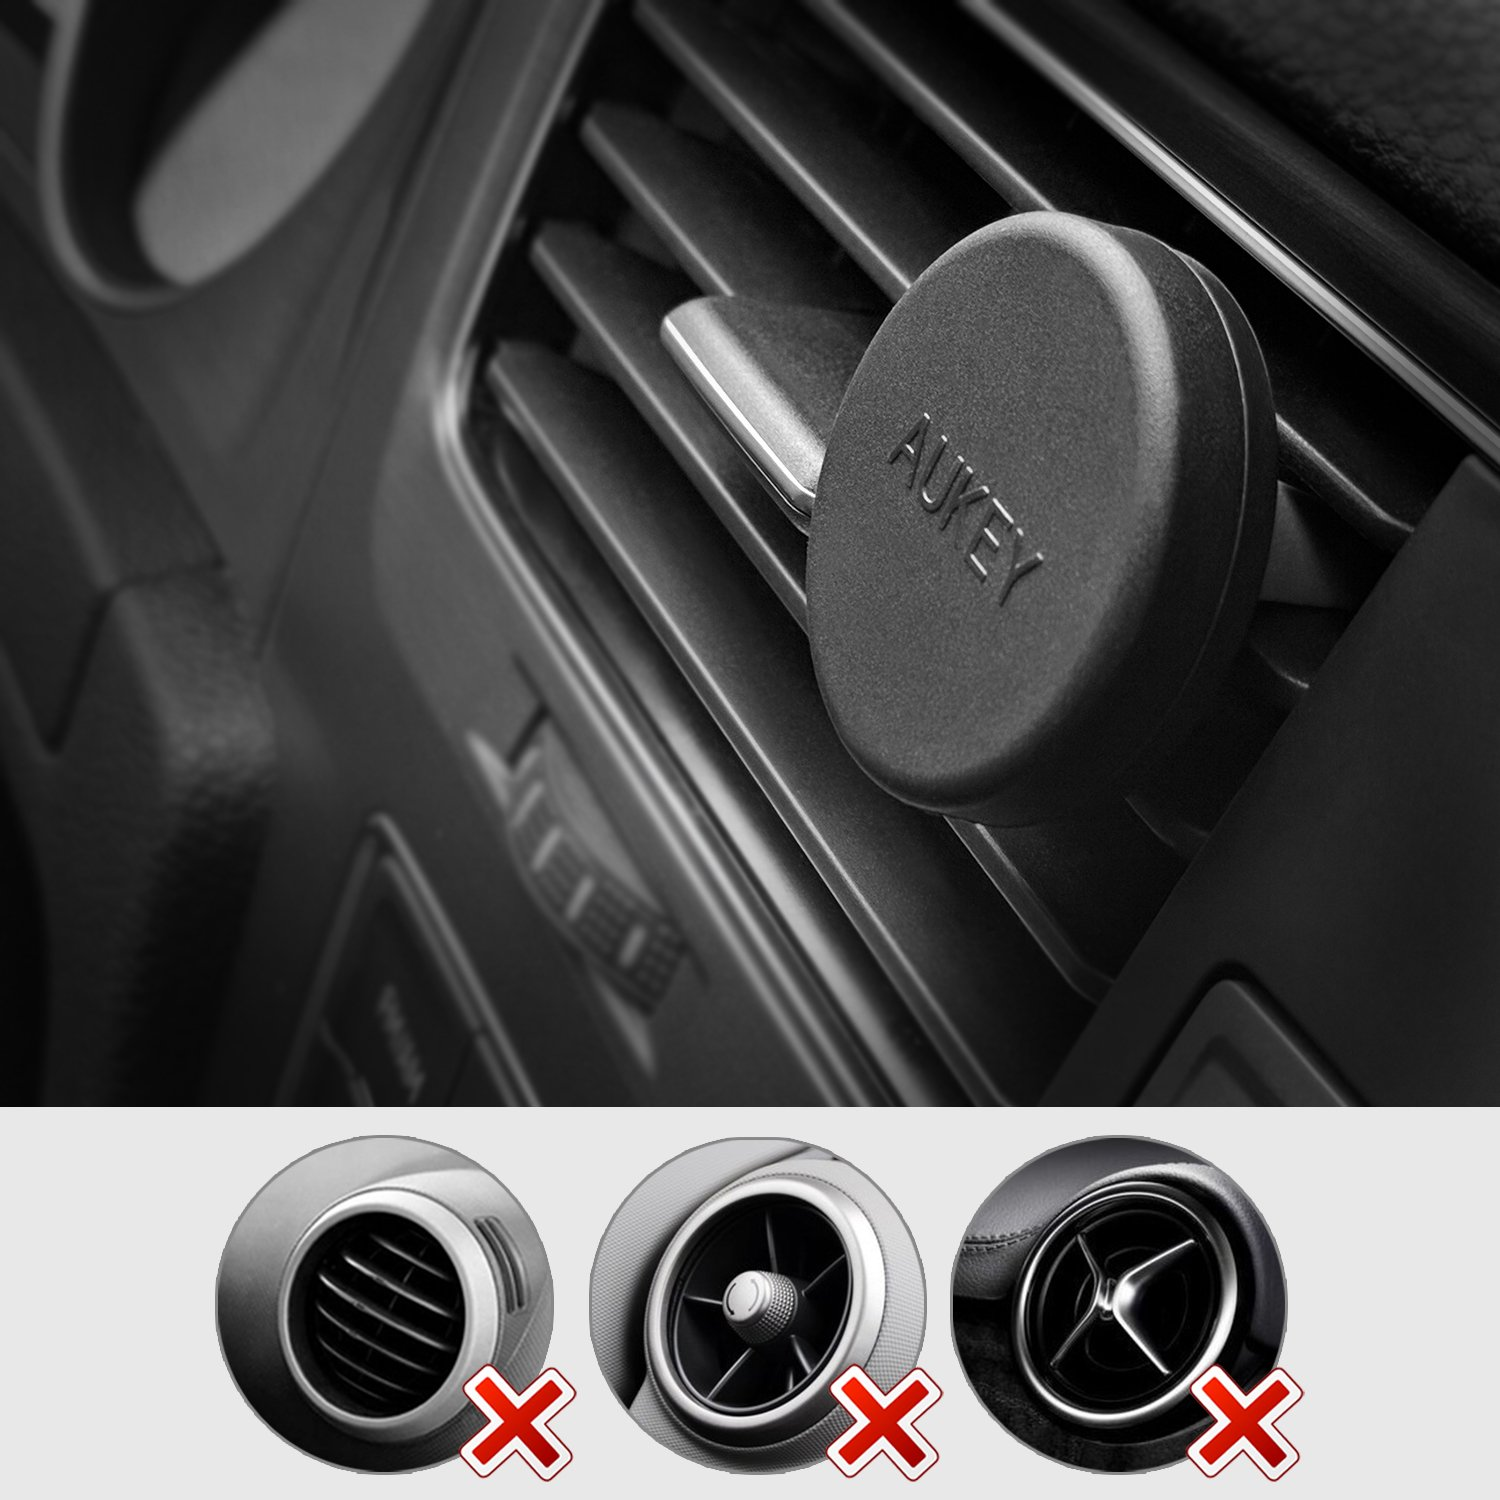 aukey car phone mount air vent magnetic phone holder